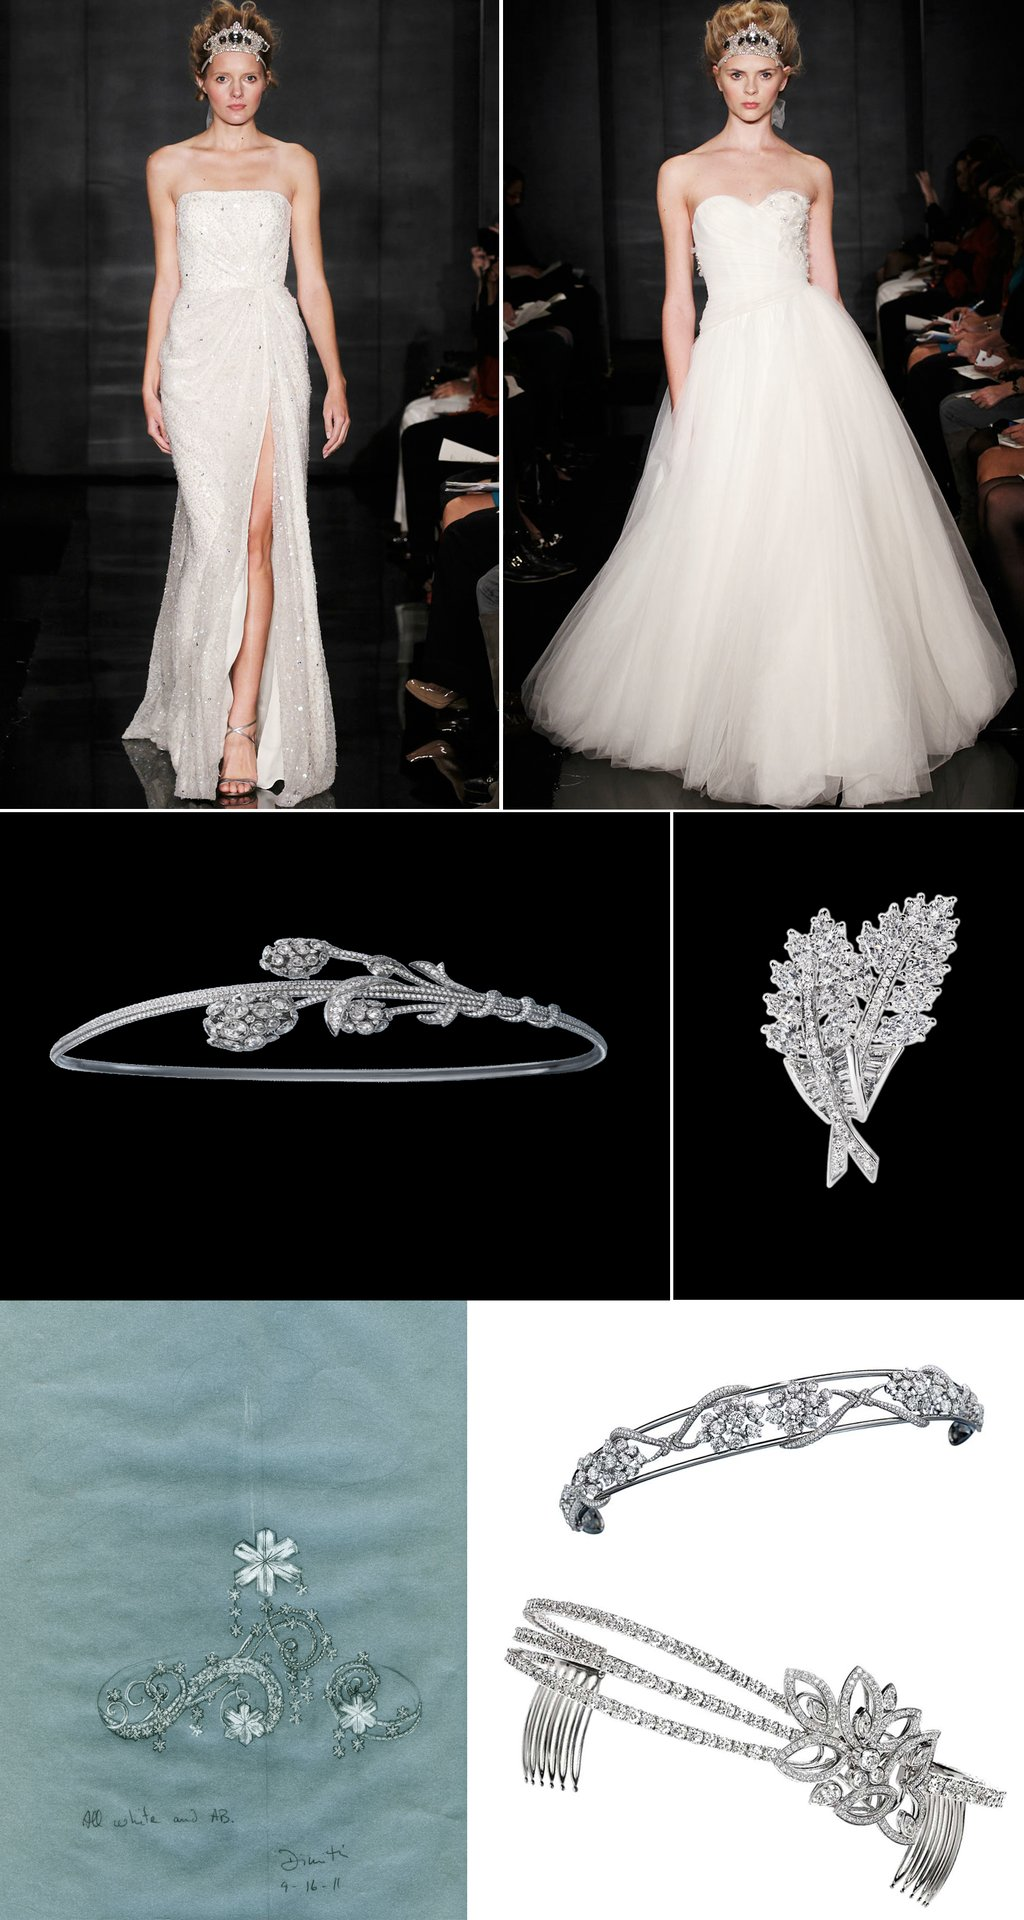 Bridal-tiaras-2012-wedding-trend-bridal-accessories-hairpieces.full